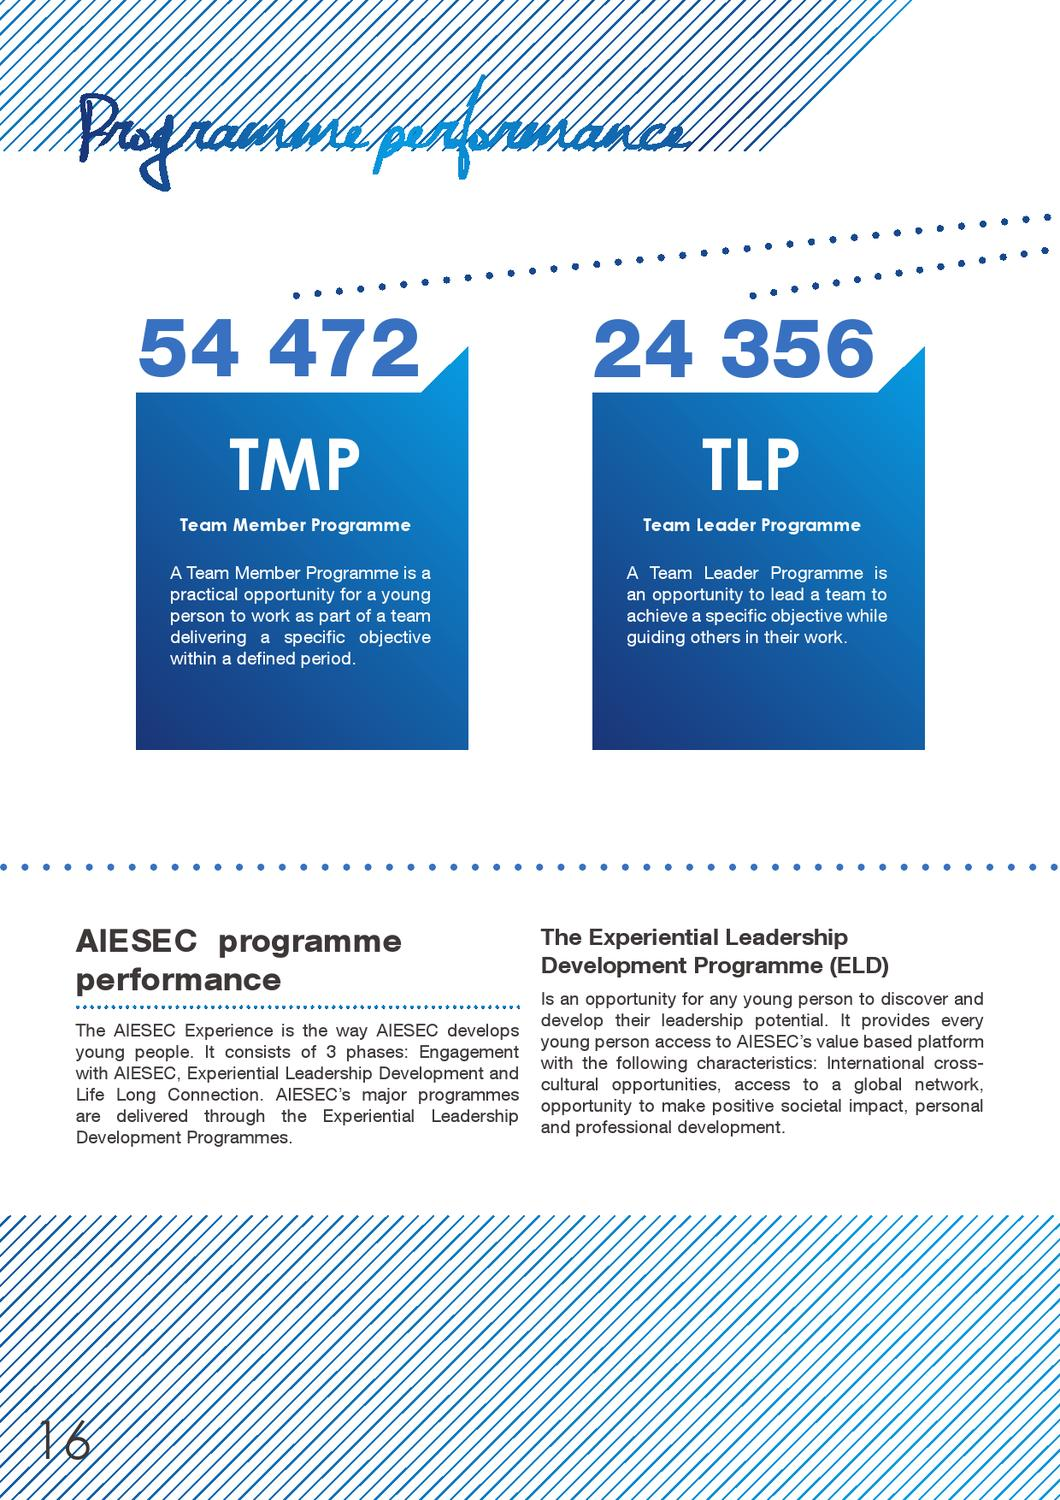 AIESEC International Annual Report 2011 - 2012 by AIESEC